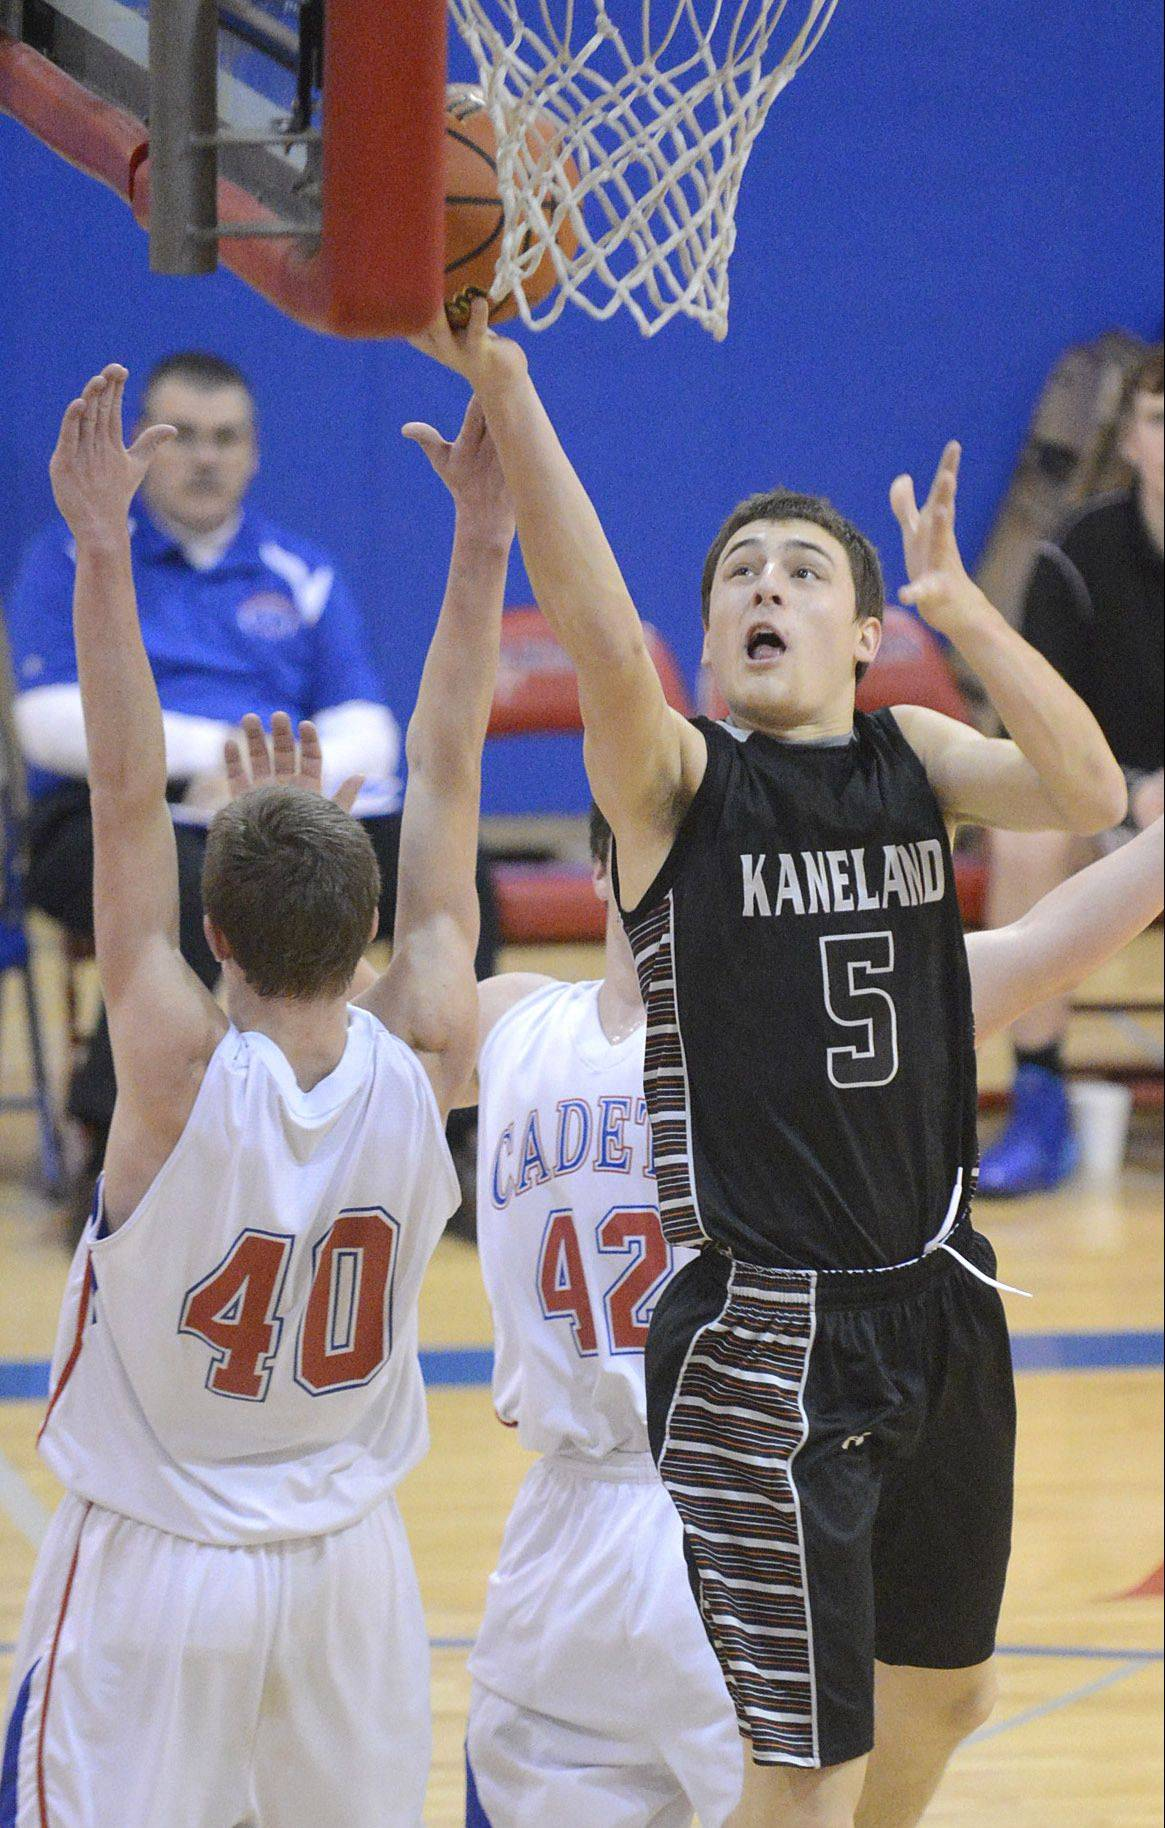 Kaneland's John Pruett lays in 2 of his 16 points against Marmion's Tyler Maryanski on Tuesday.